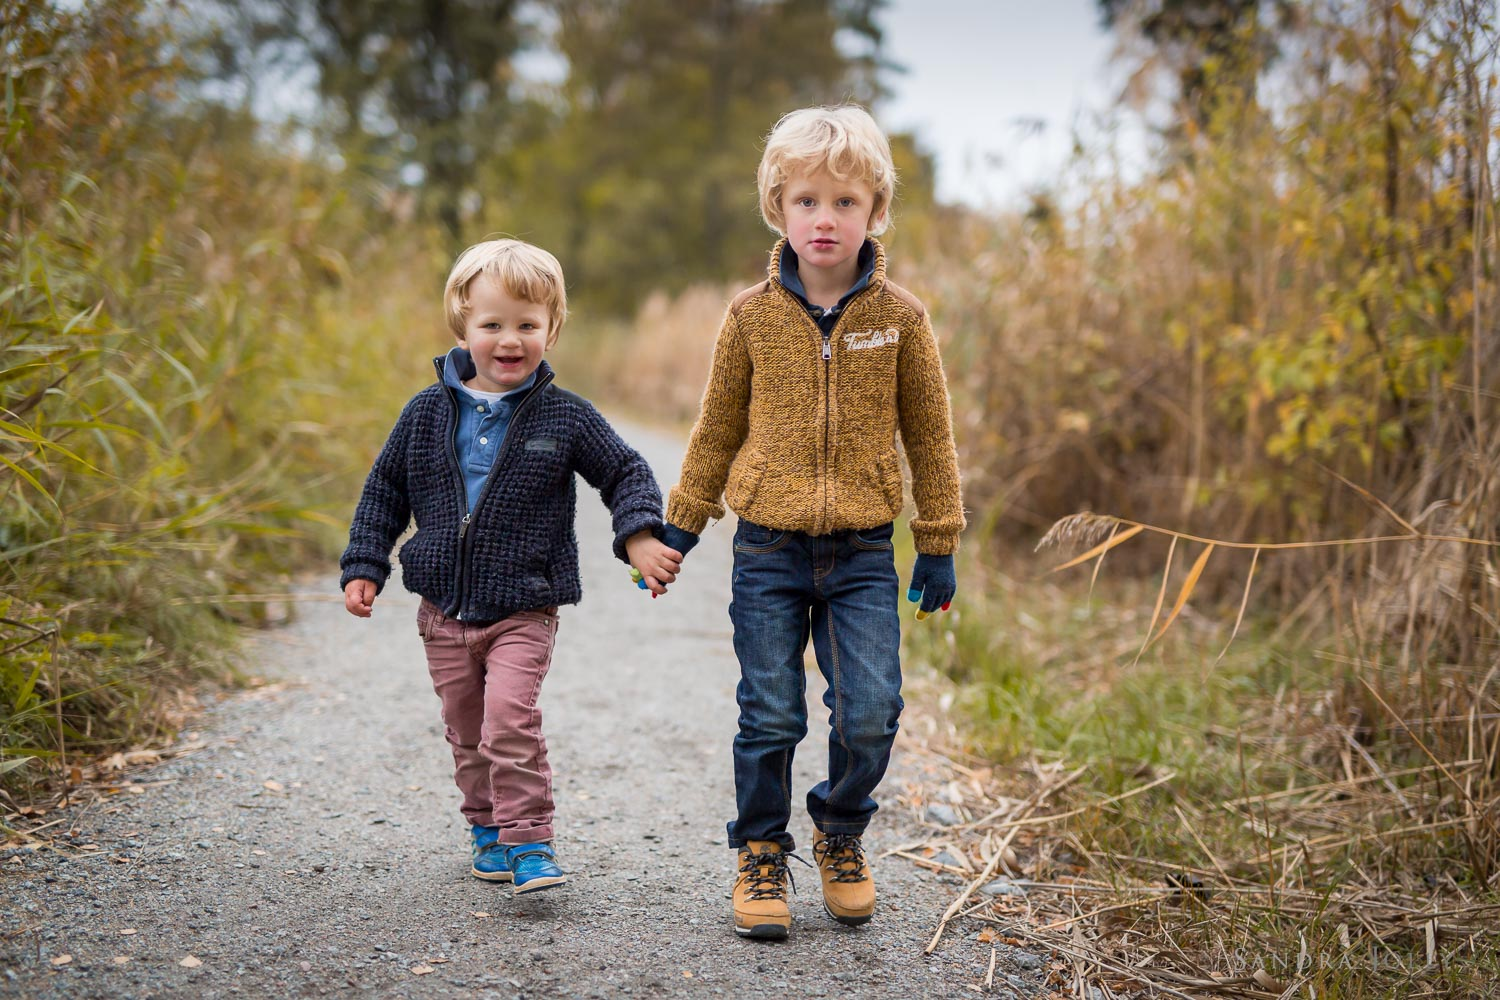 Brothers-walking-by-Stockholm-fotograf-Sandra-Jolly.jpg